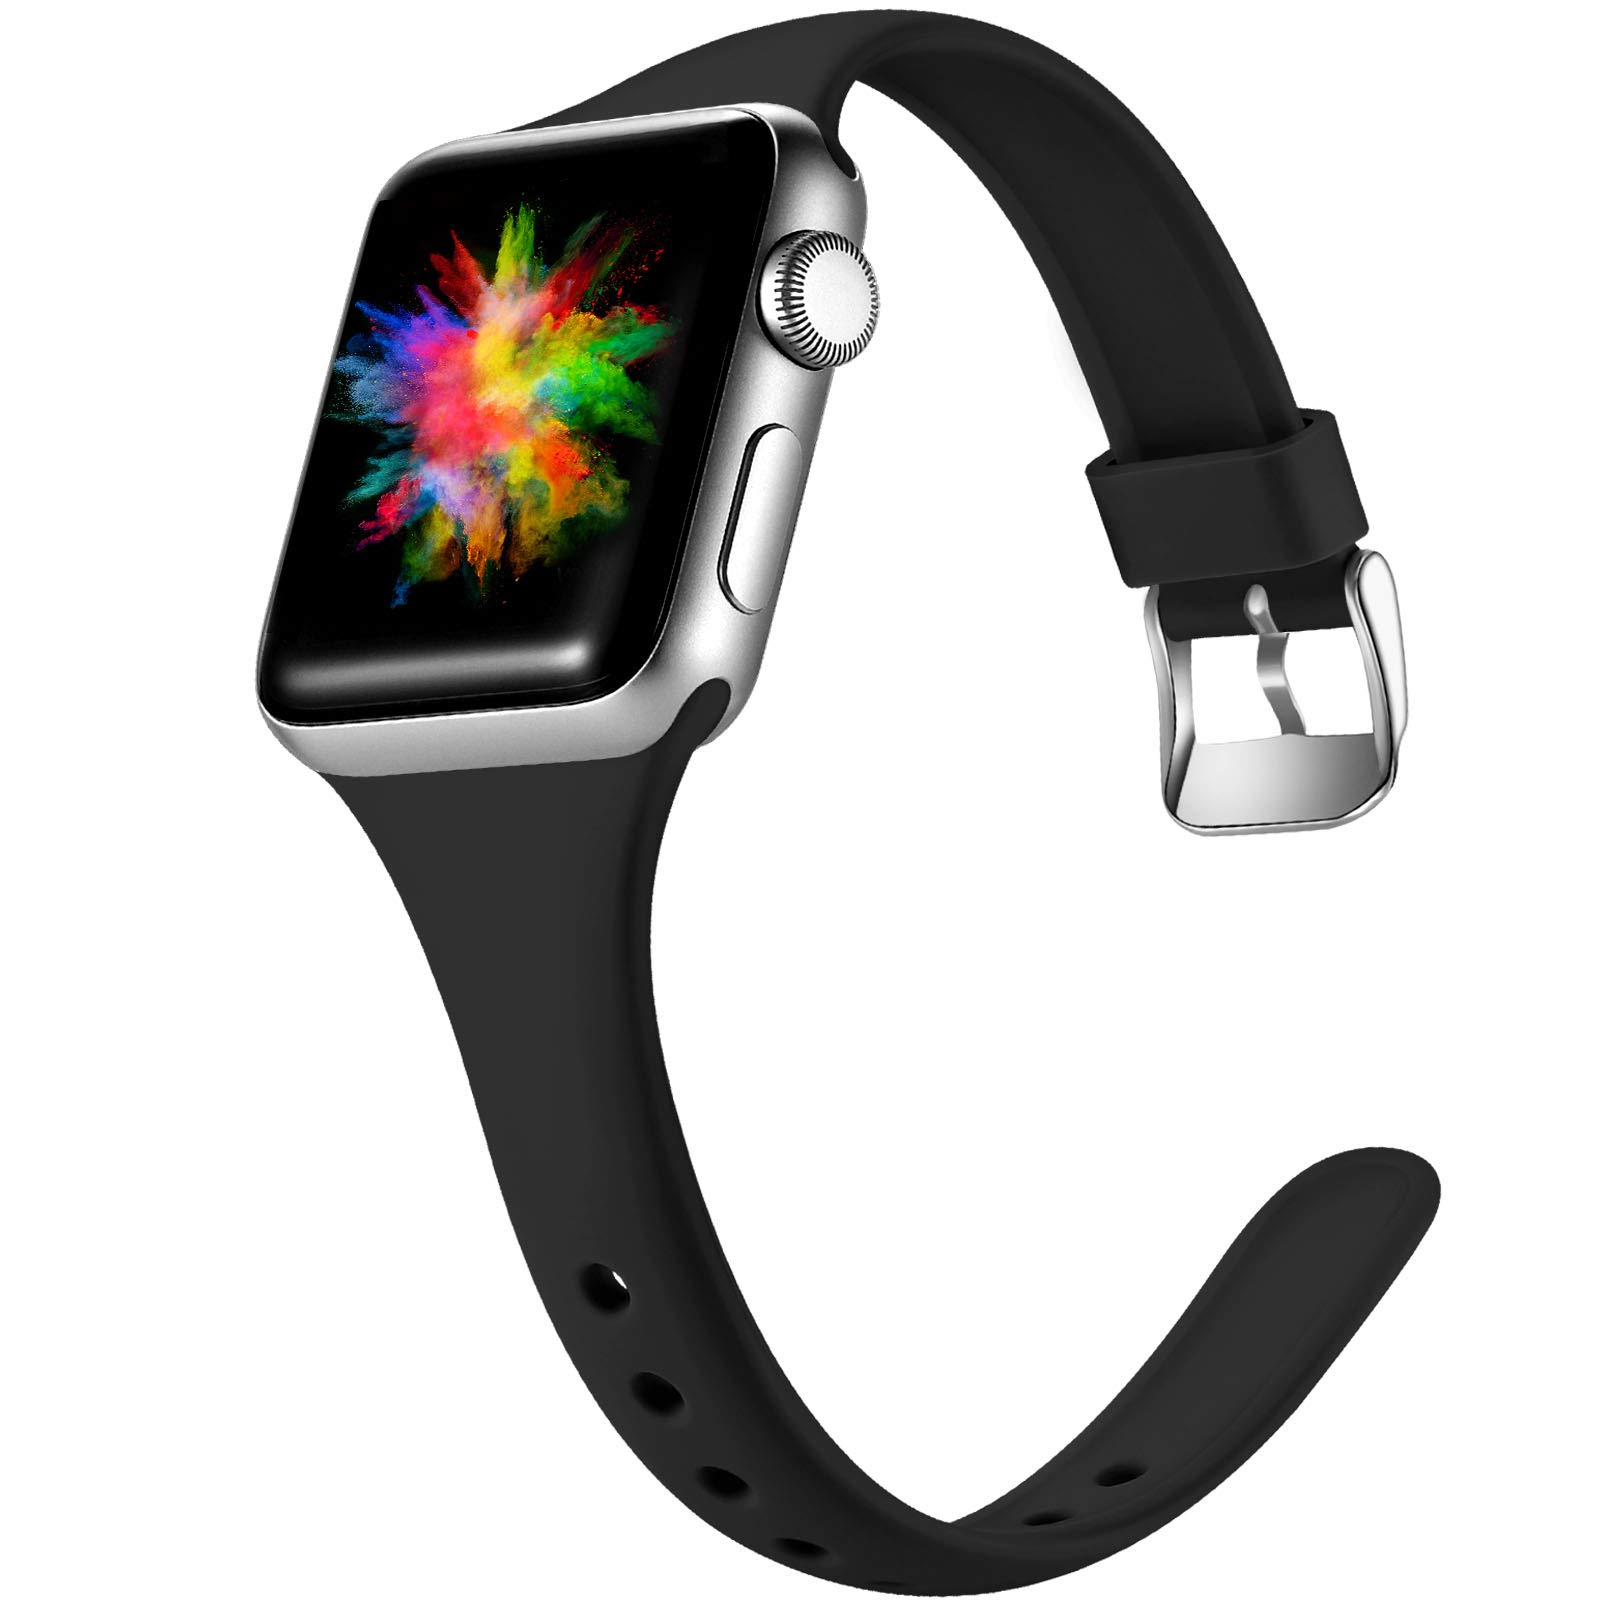 DGege Slim Watch Bands Compatible with Apple Watch 38mm 42mm 40mm 44mm